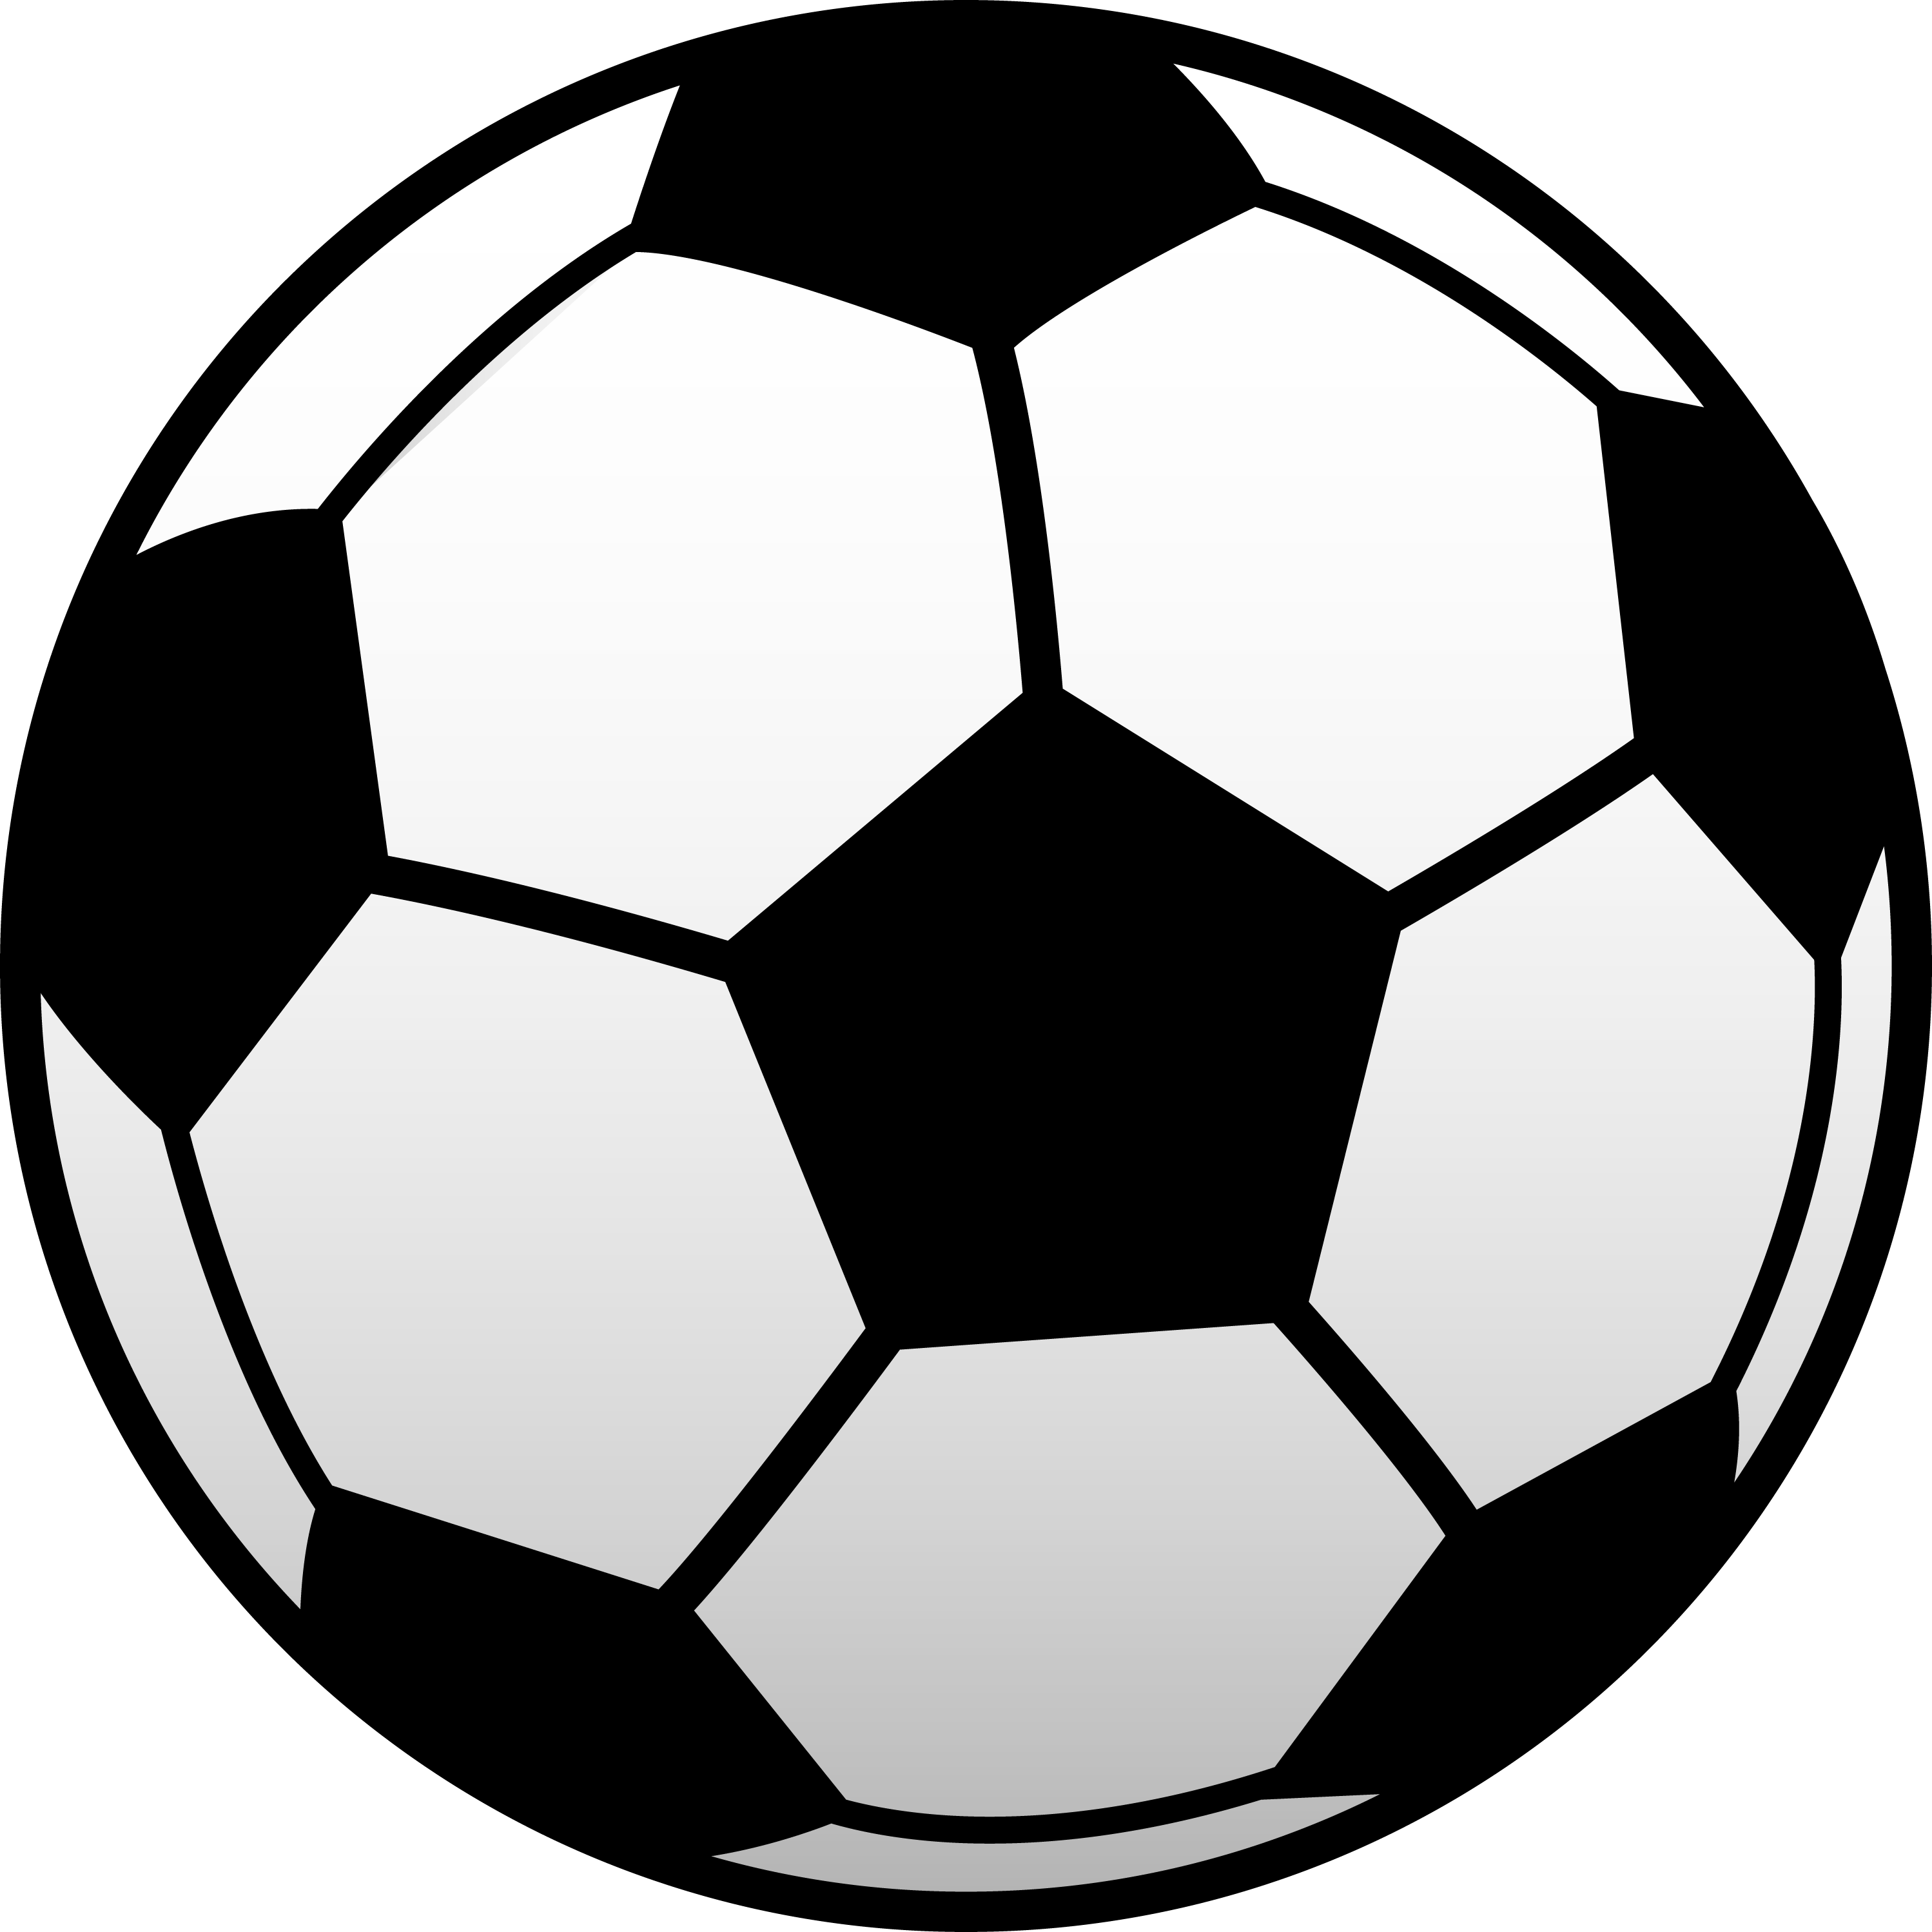 Kids Soccer Ball Clip Art